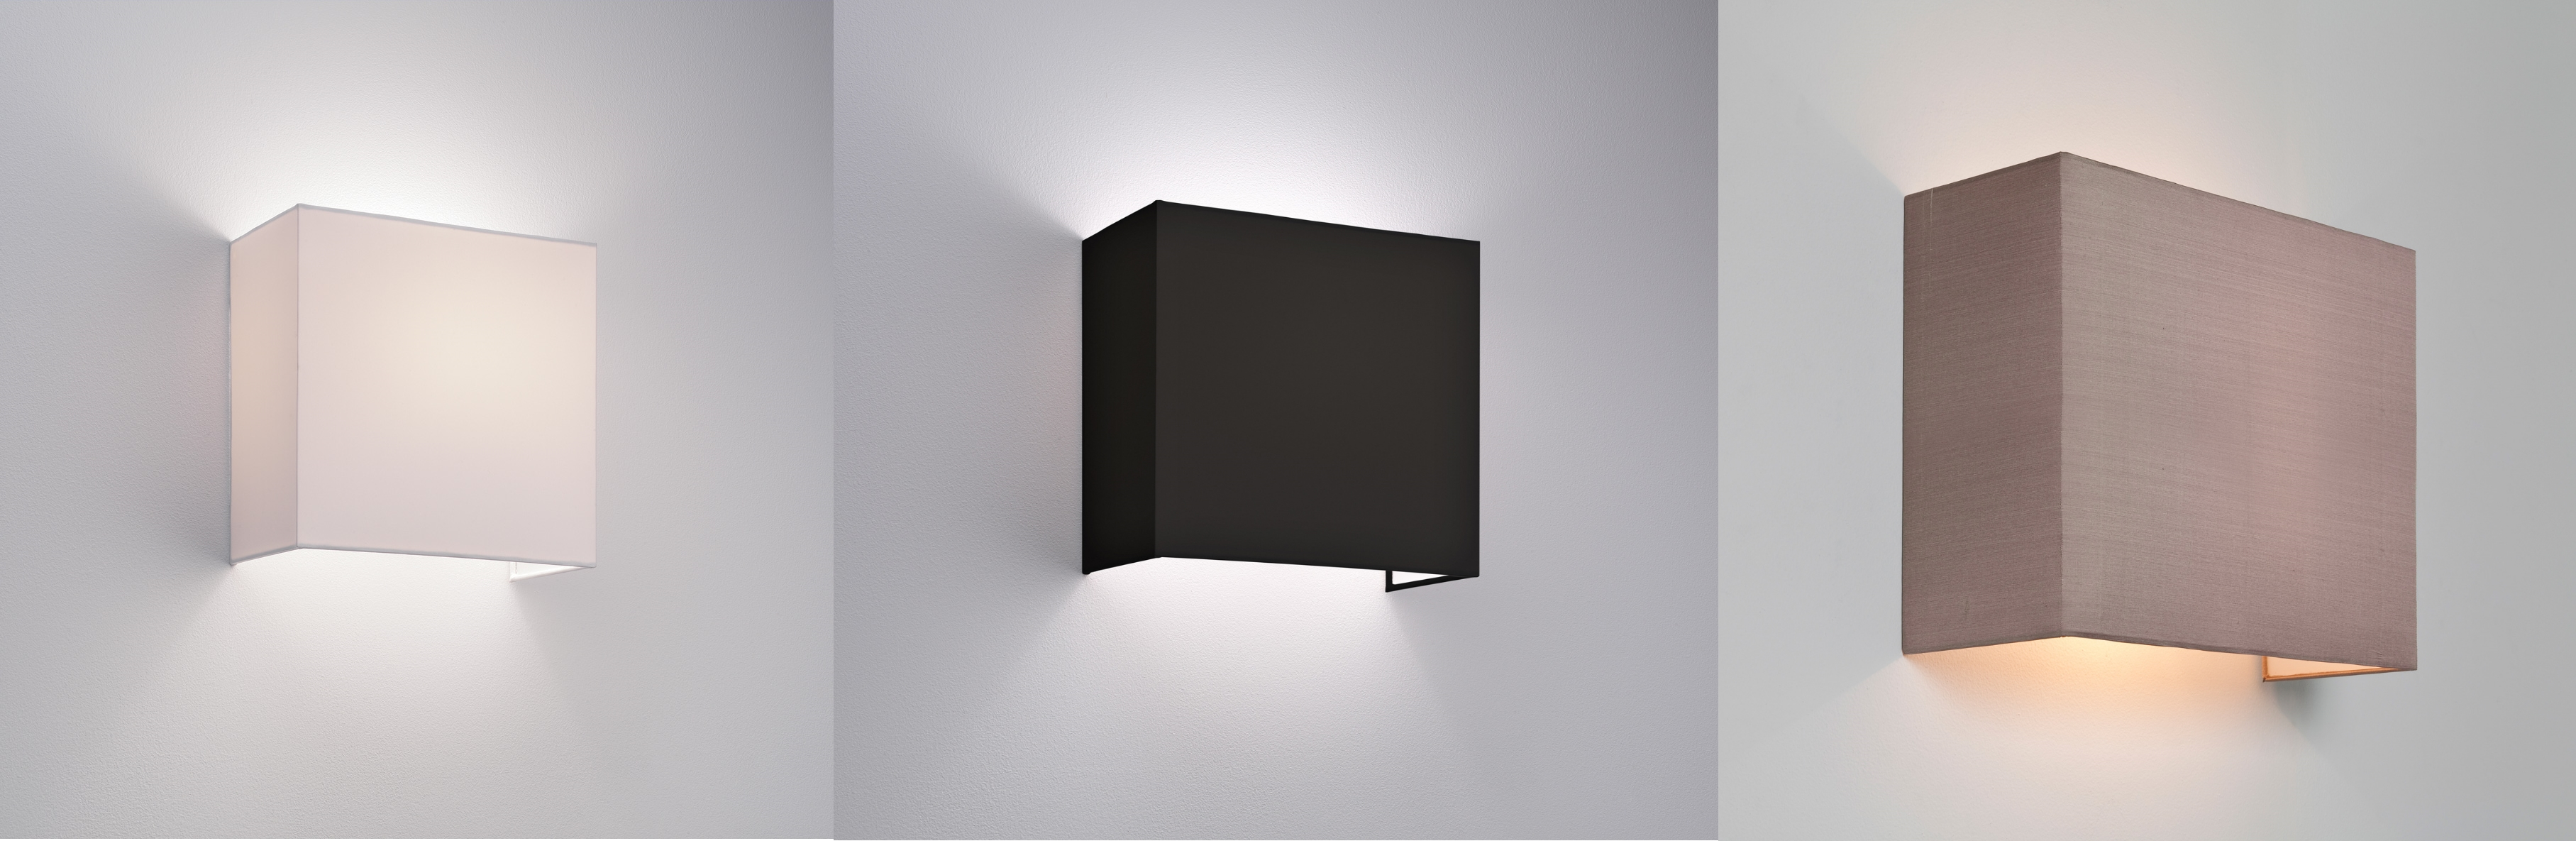 Black Wall Lamp Shades : Astro Chuo 250 fabric wall light shade 60W E27 white black oyster eBay